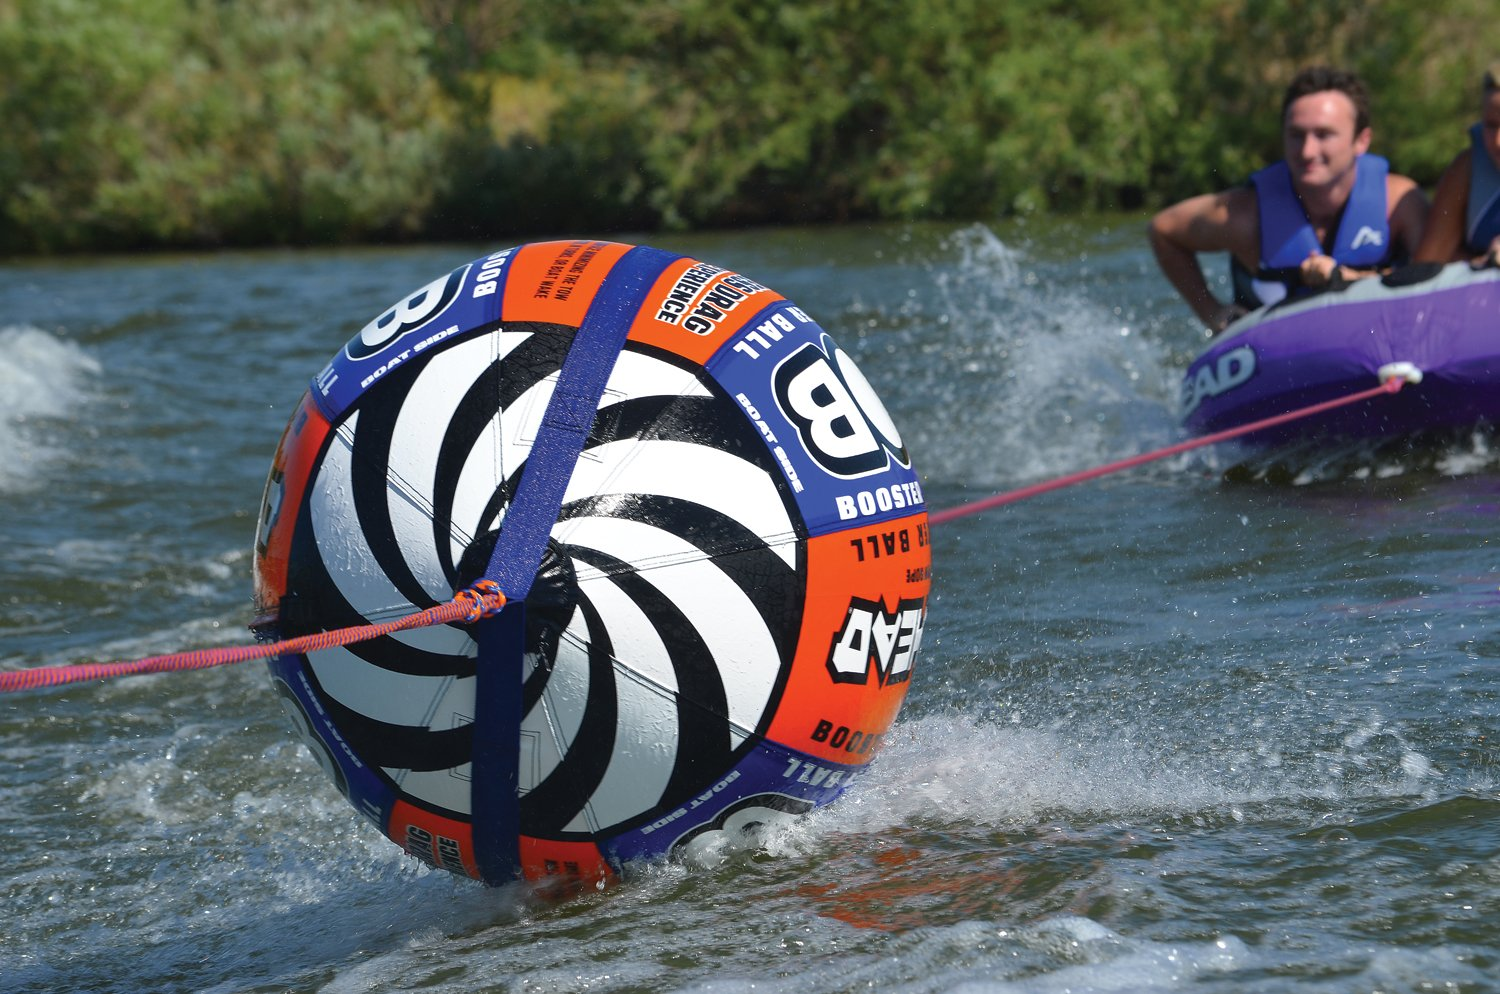 Airhead Ahbob 1 Bob Tow Rope W Inflatable Buoy Booster Harness Ball Lake Towables Tubes Sports Outdoors